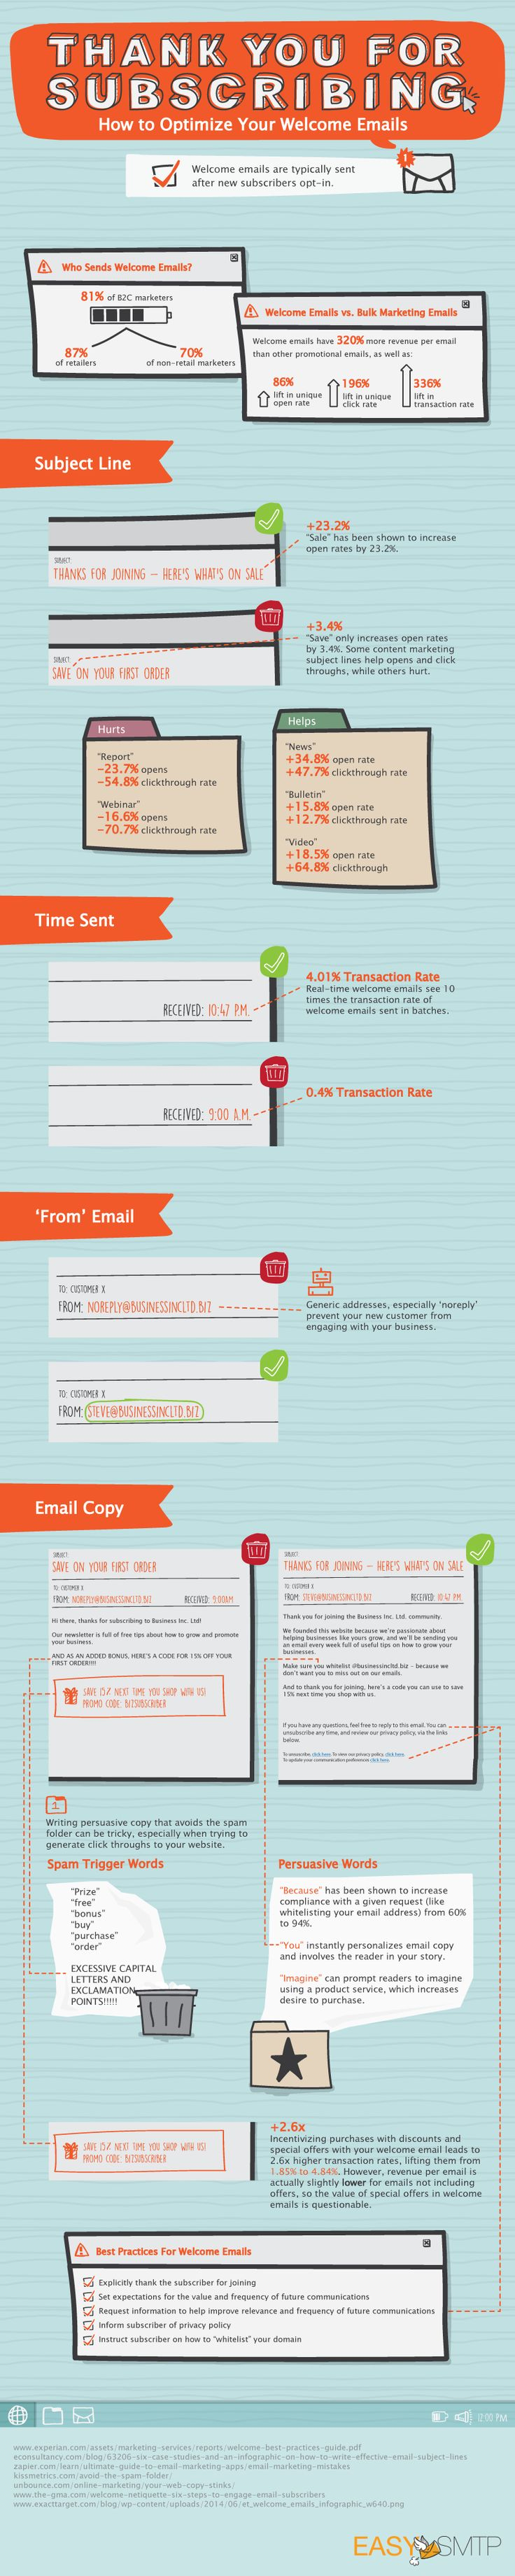 A Guide to Properly Optimize your Welcome Emails #infographic #Business #EmailMarketing #Marketing